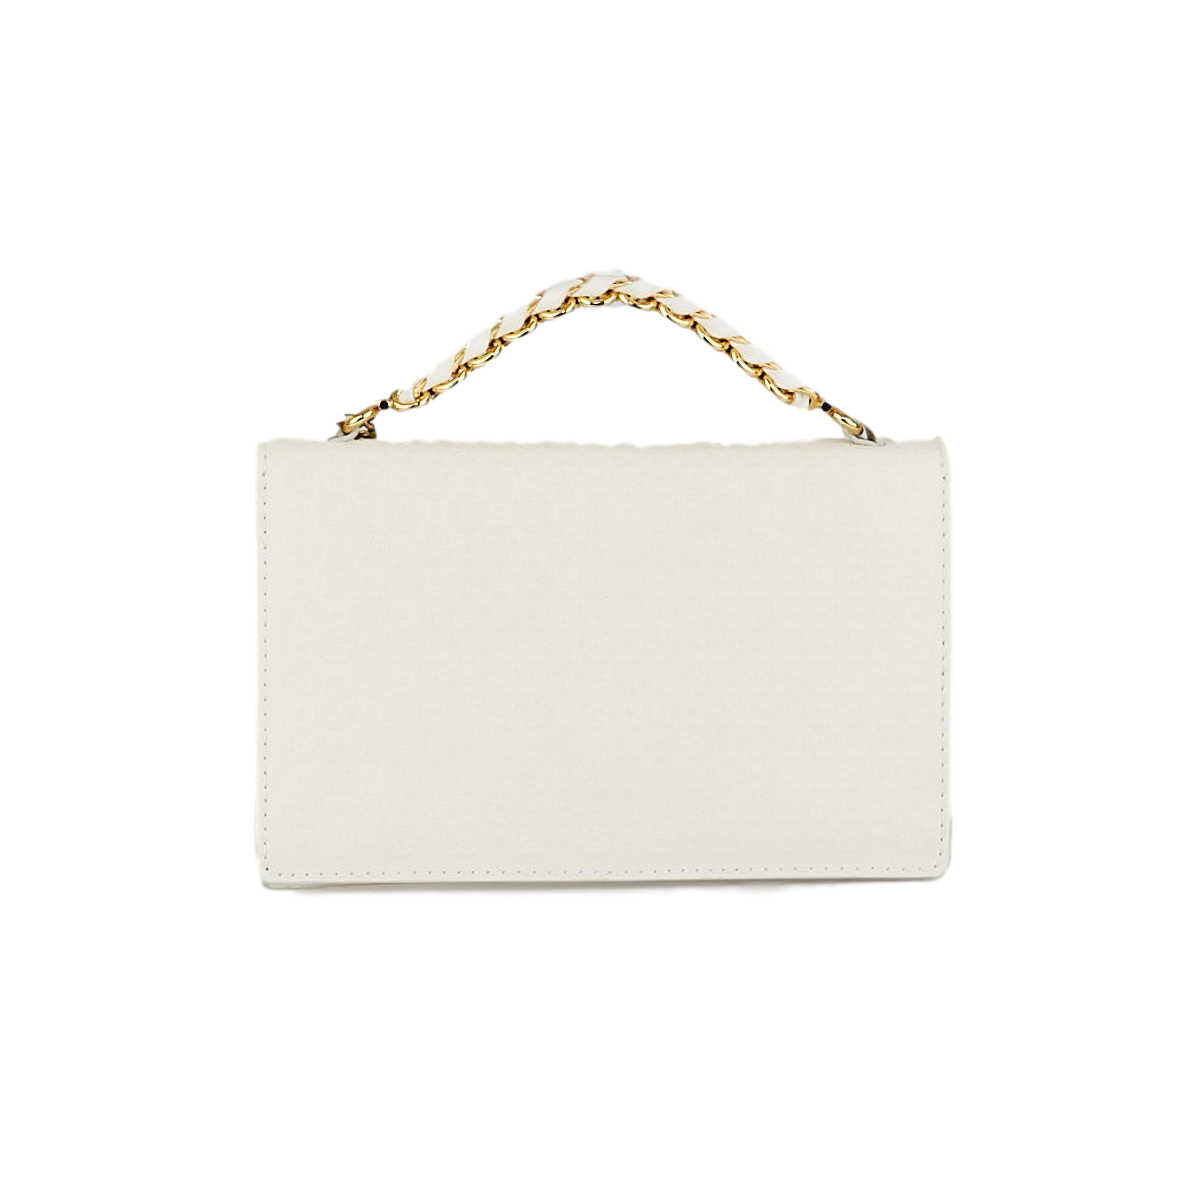 Stella Mccartney 'Grace' Clutch